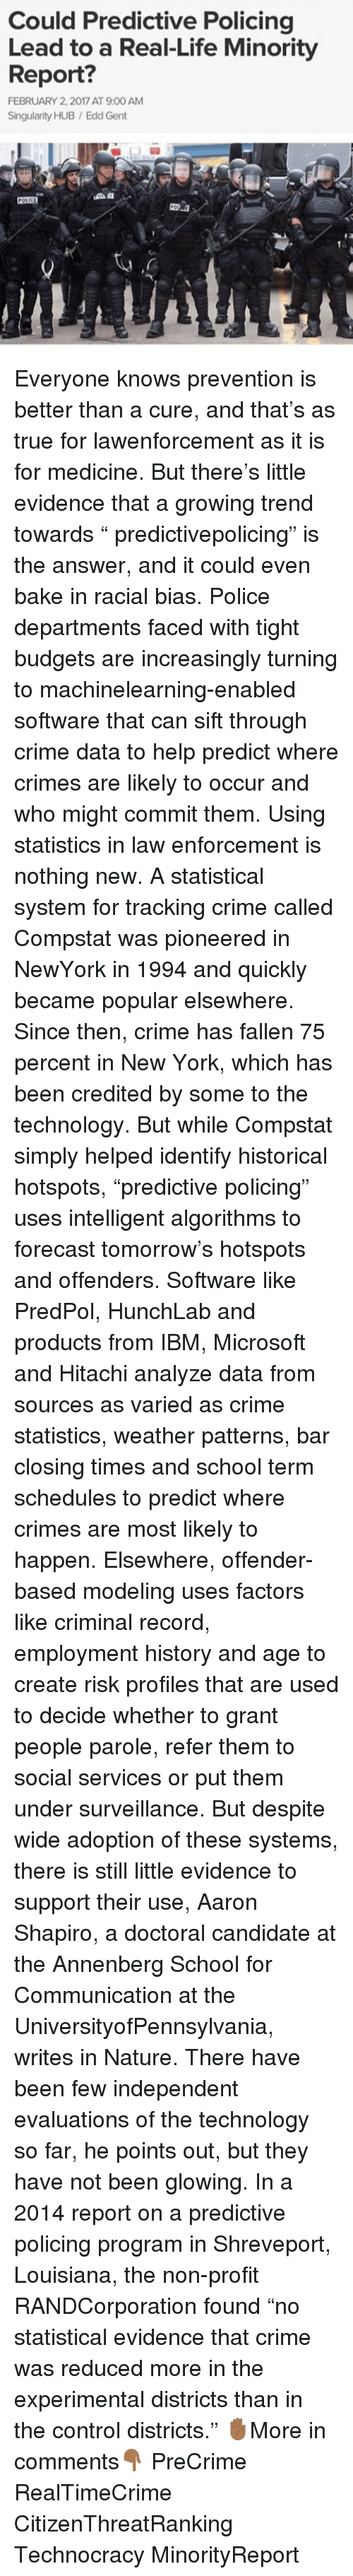 compstat law enforcement with predictive policing